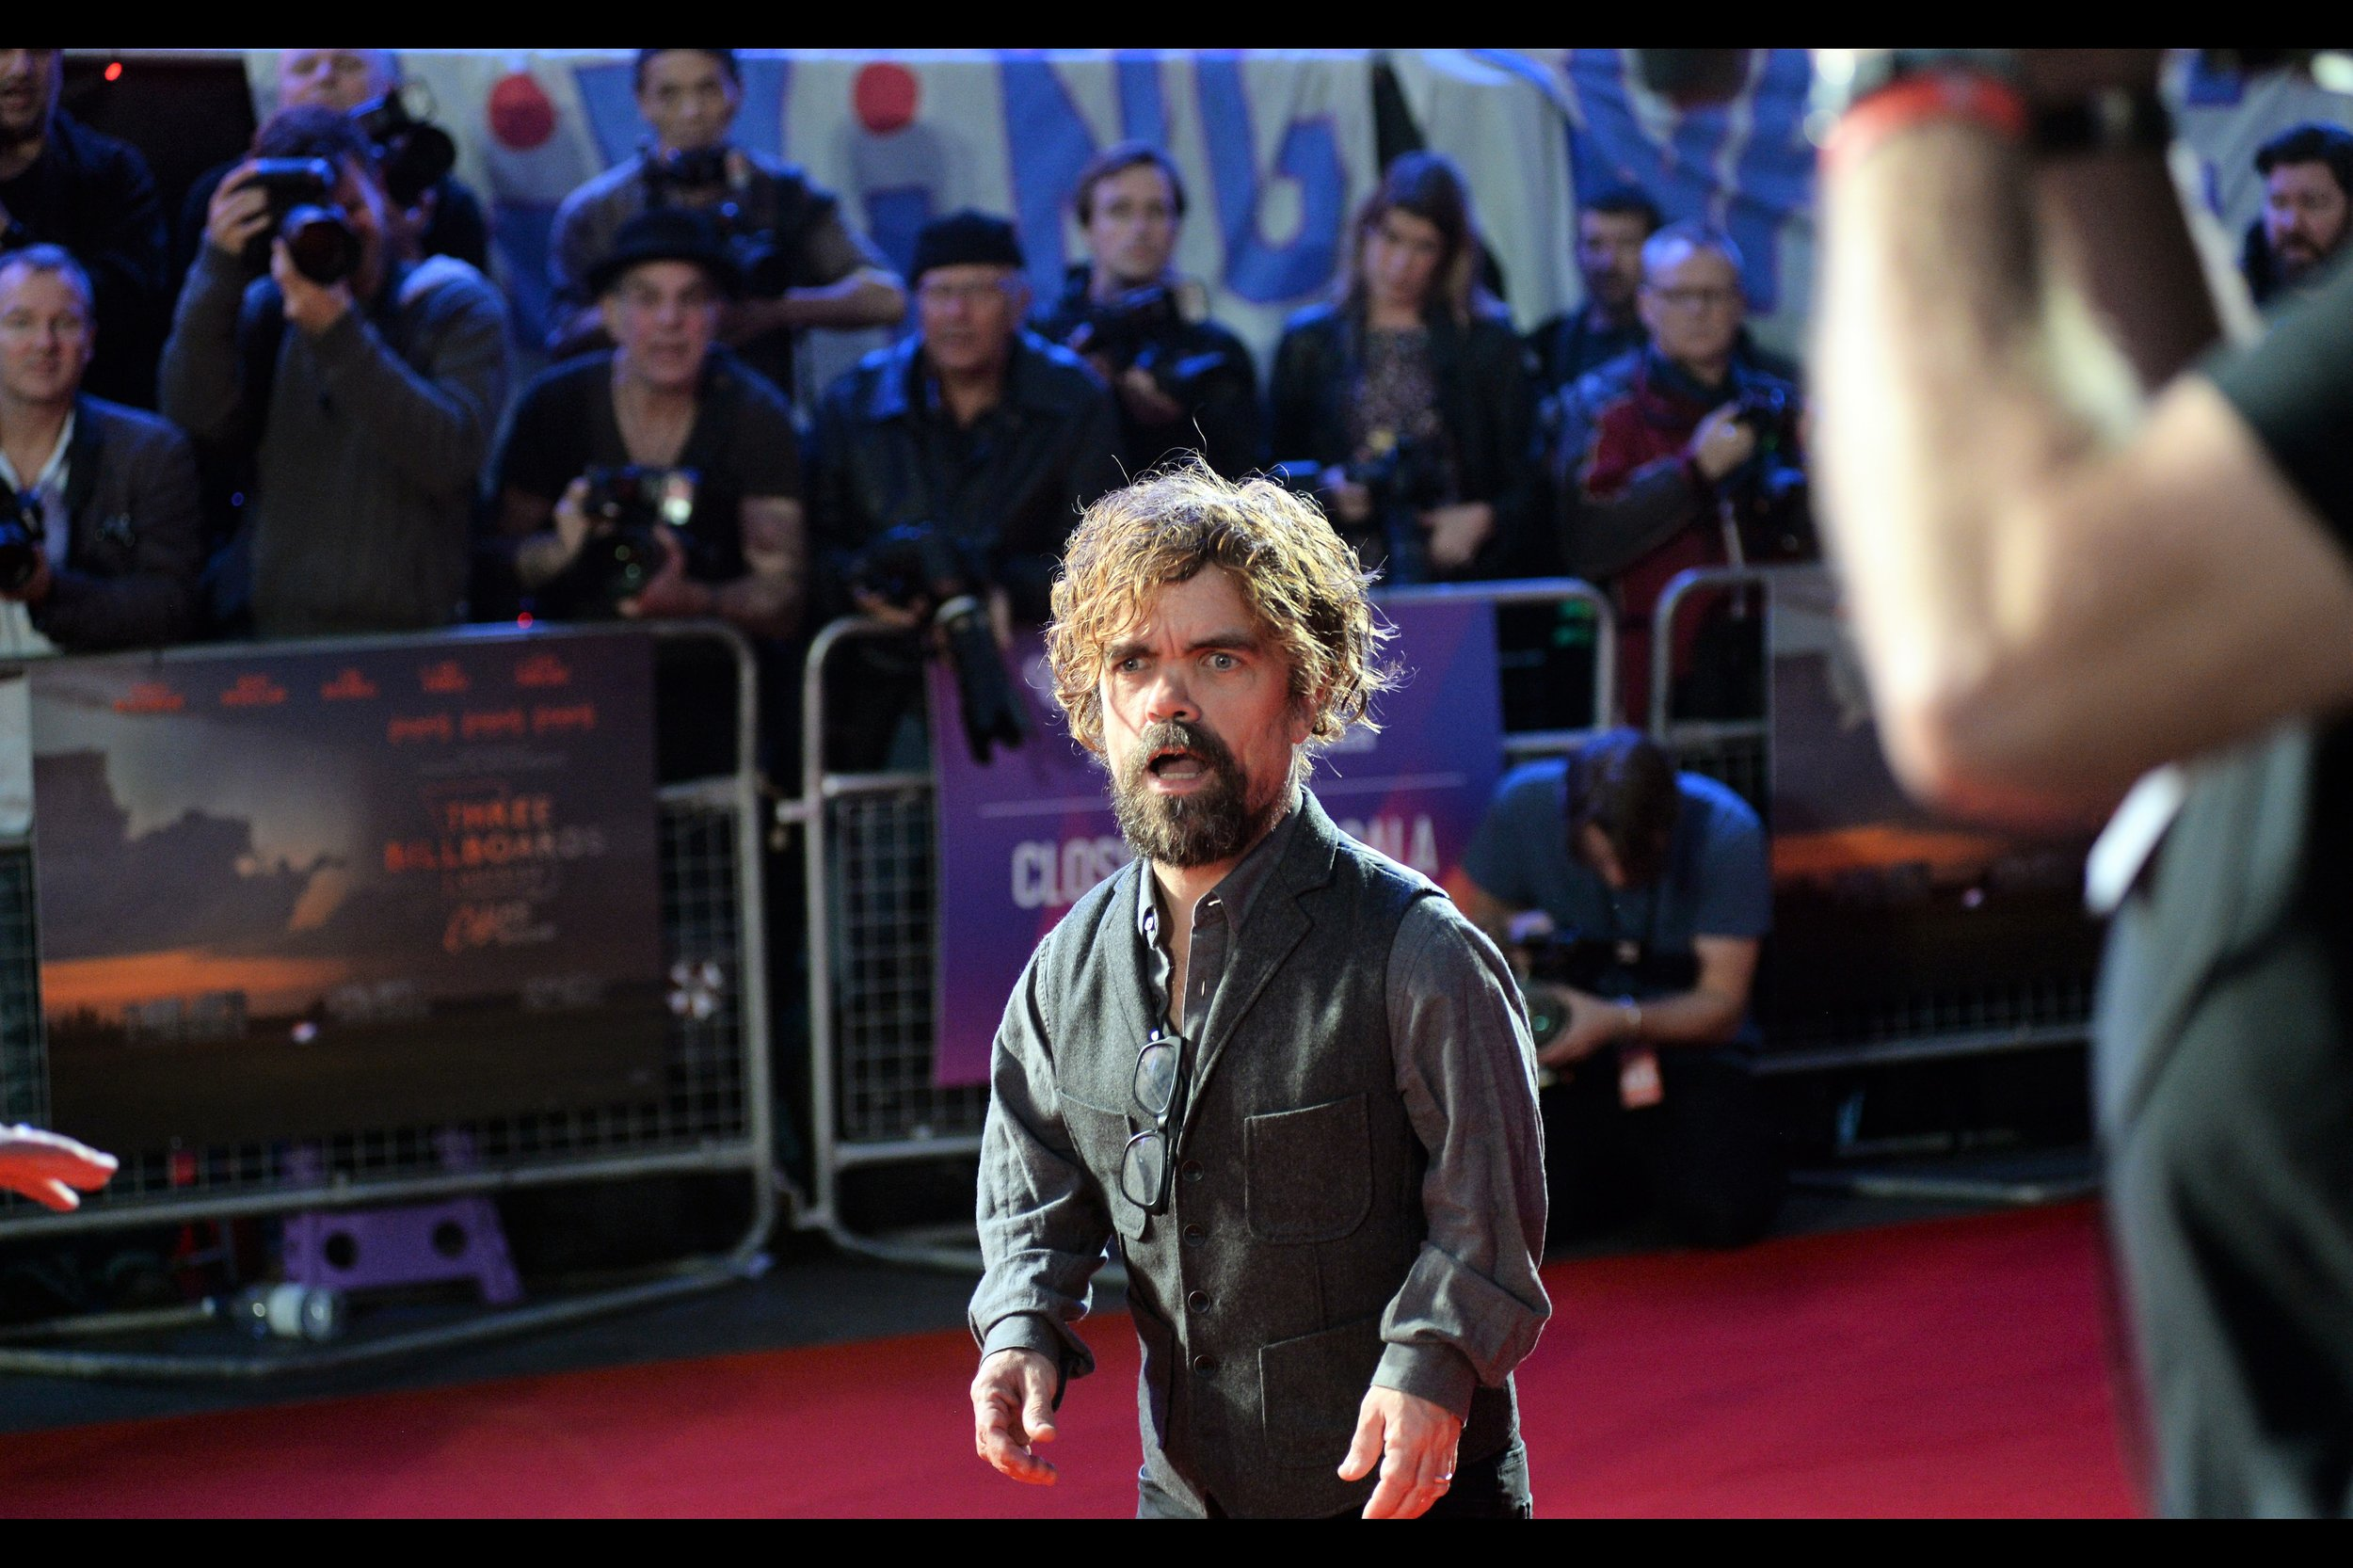 October 15th. Even I couldn't believe I'd finally managed to photograph (a) Woody Harrelson, (b) Frances McDormance, (c) Sam Rockwell AND (d) Peter Dinklage for the first time, all at the same premiere : for    'Three Billboards Outside Ebbing, Missouri'    to close out BFI LFF for 2017.